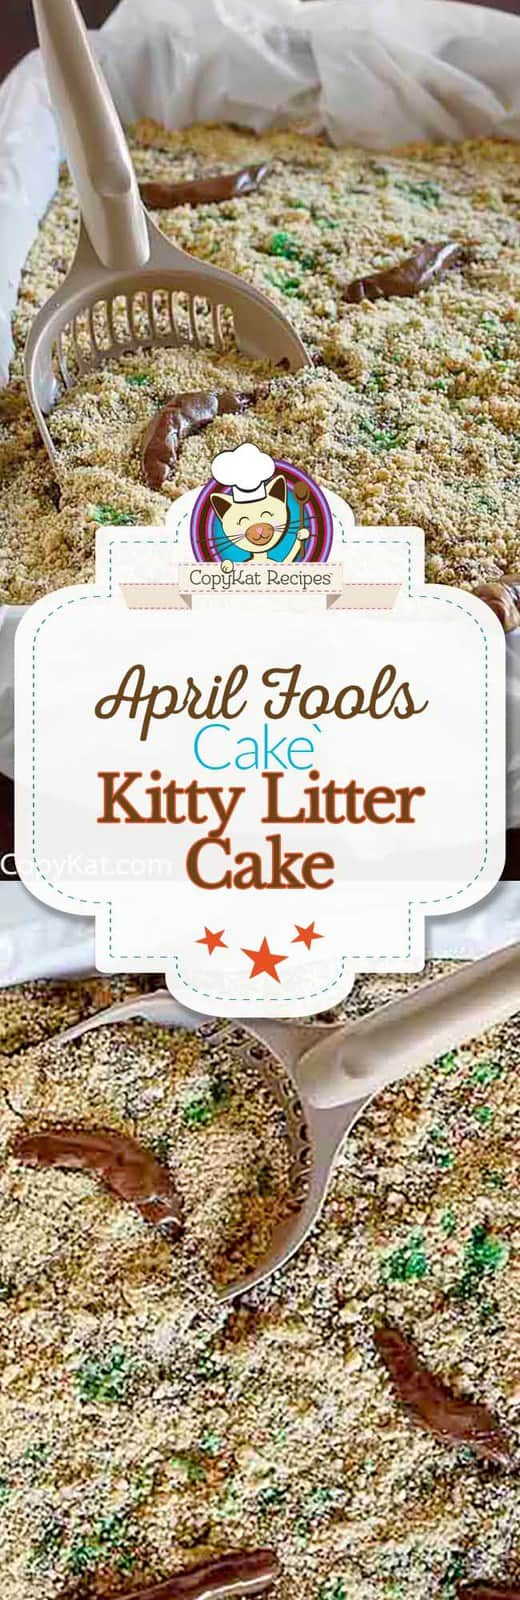 It may look like a kitty litter box, but it's really a crazy looking cake.